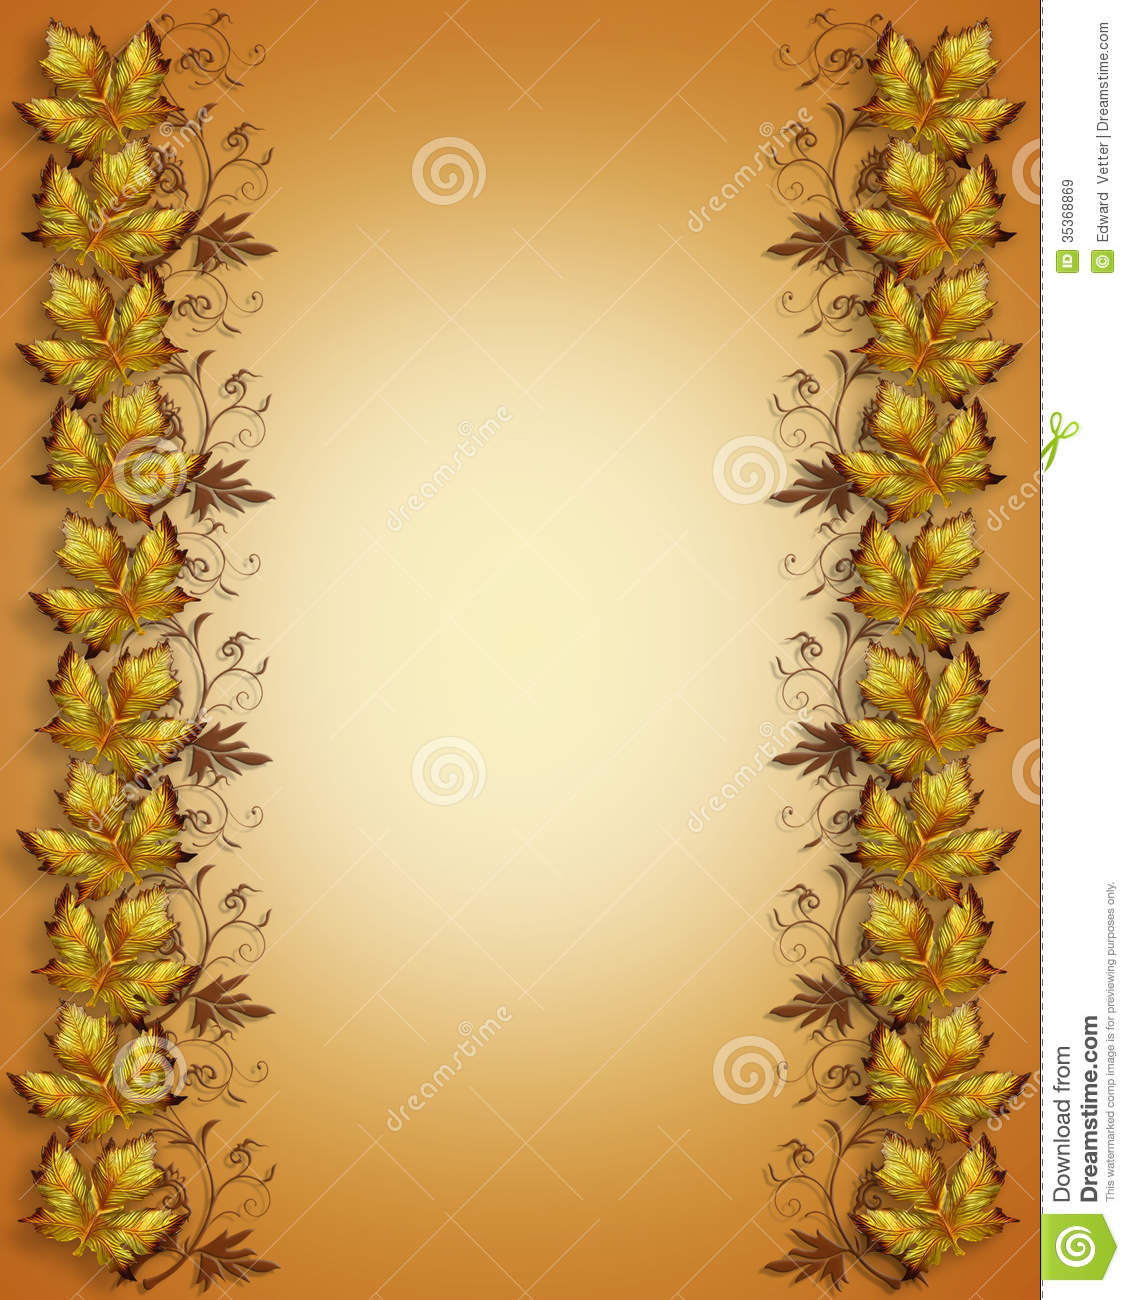 Autumn Leaves Border Stock Illustration Image Of Wedding 35368869